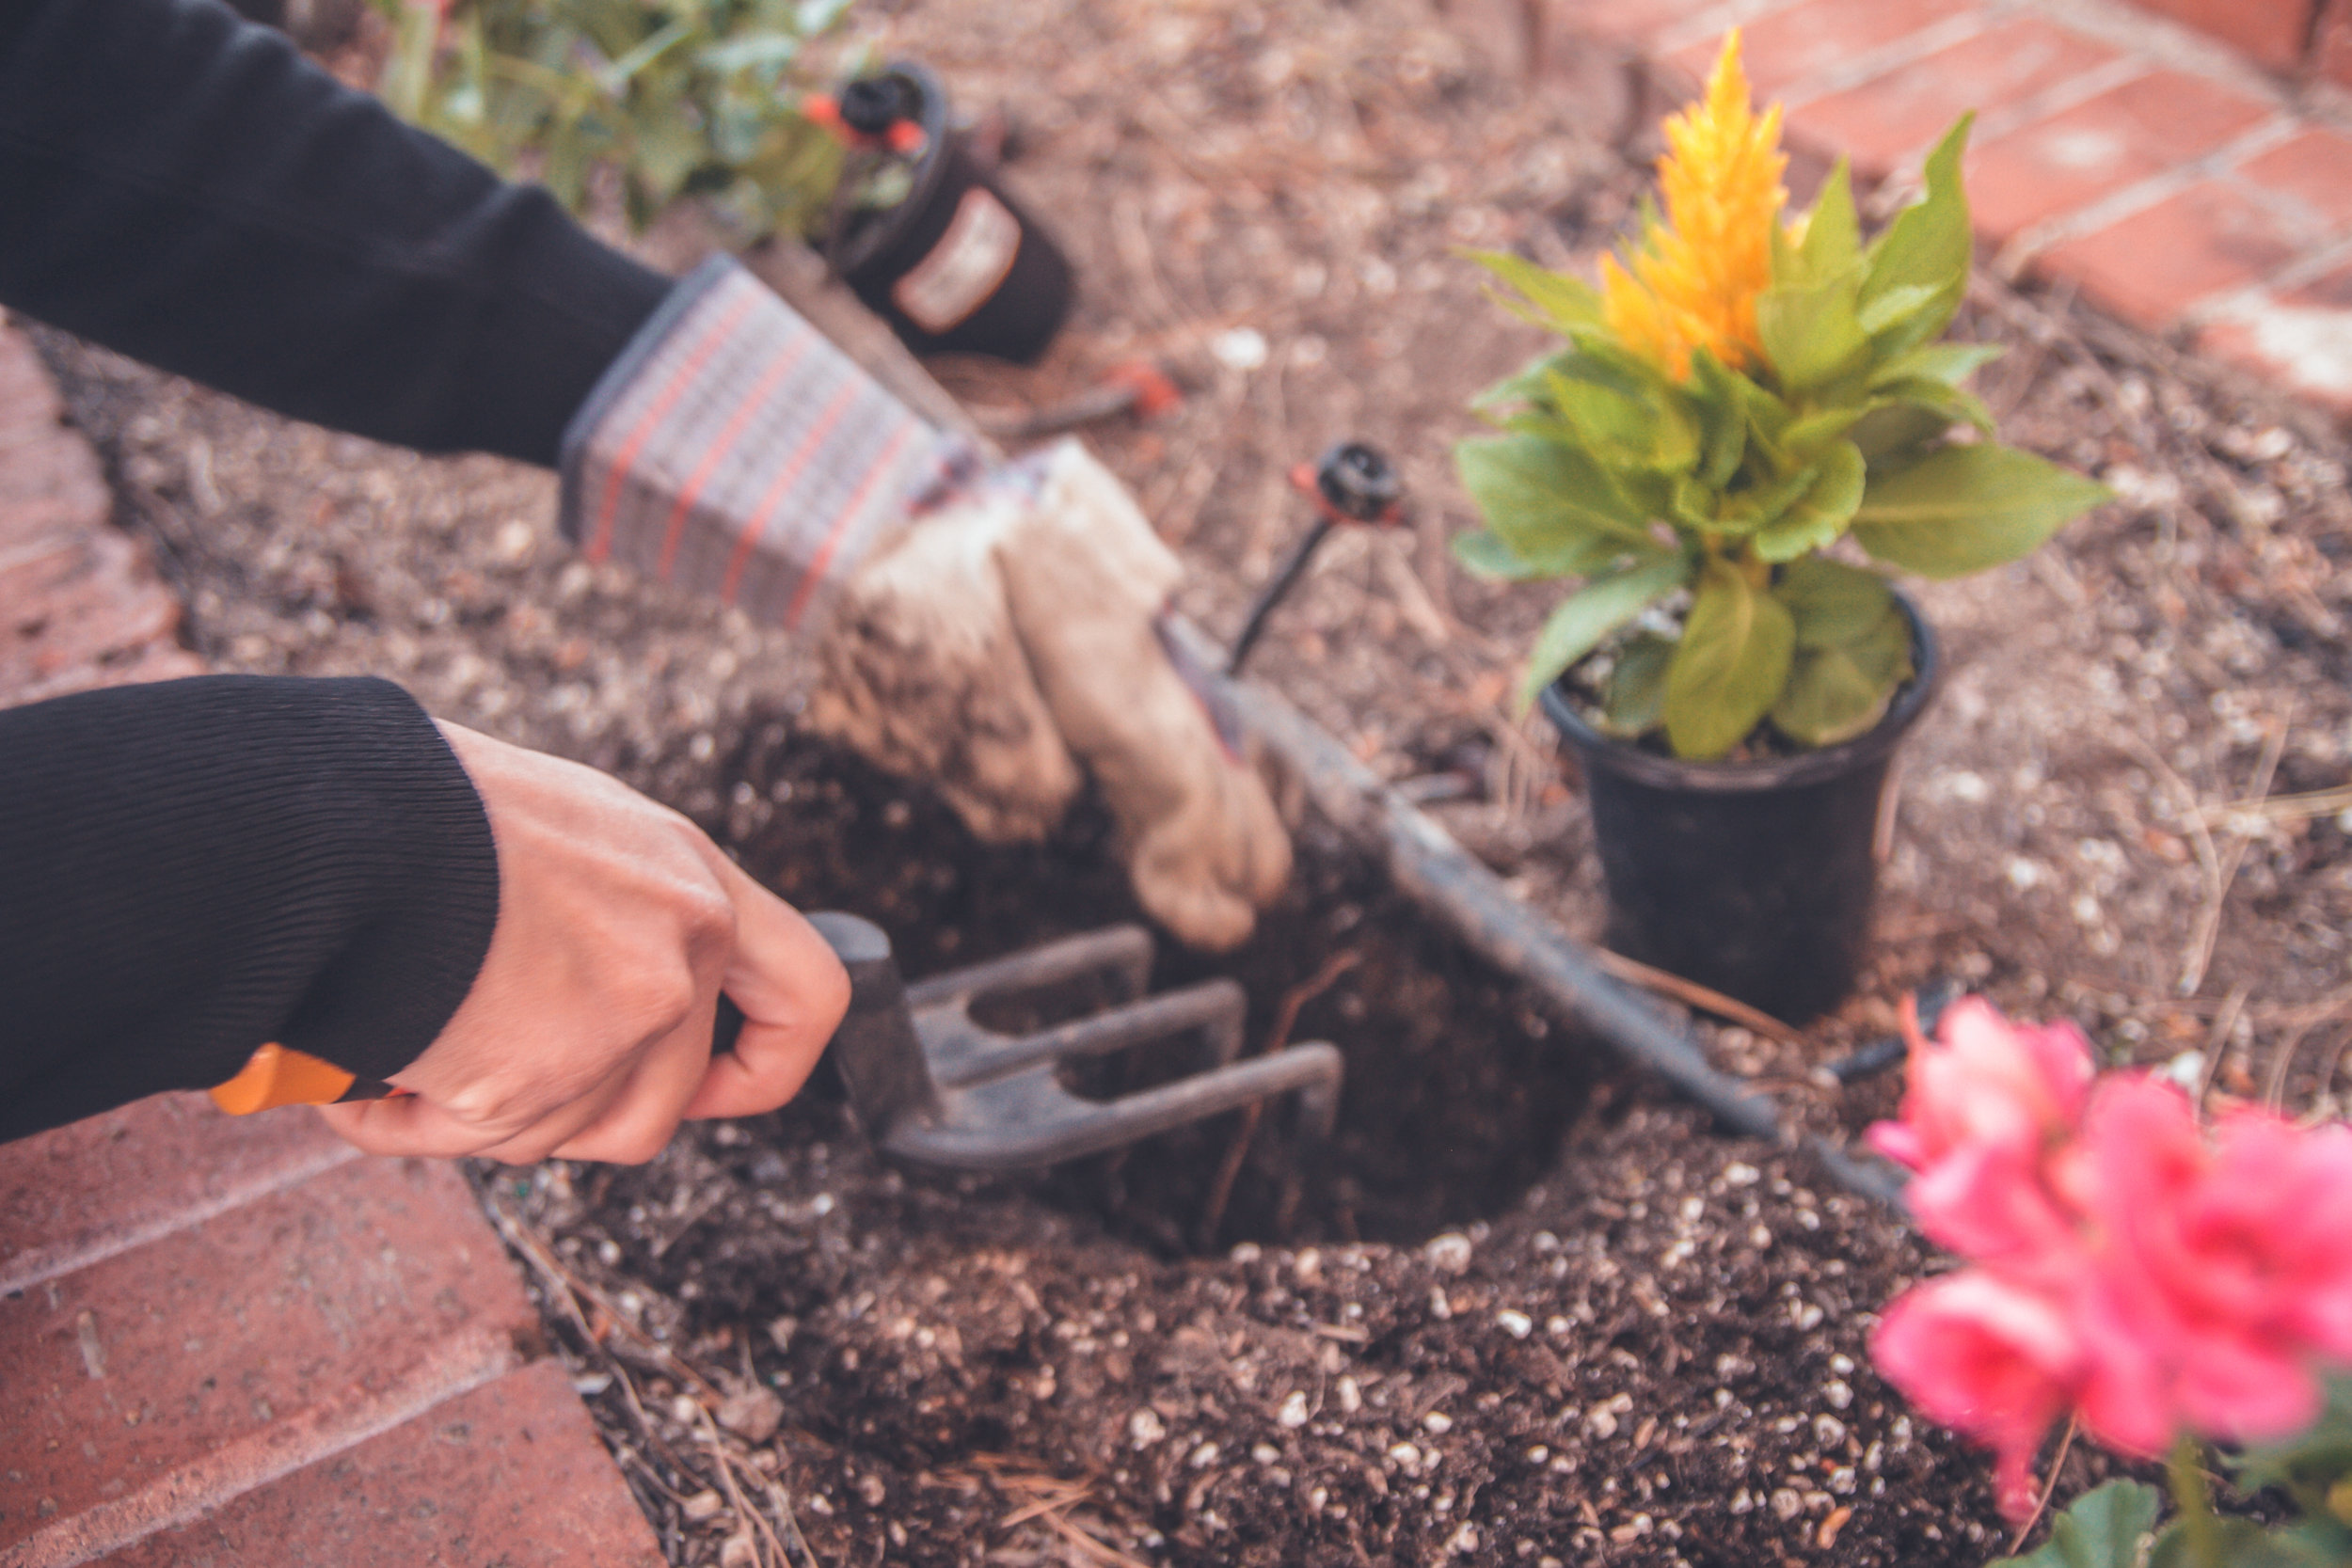 Ask an expert - Get pro tips from a master gardener on how to create a thriving Colorado garden.